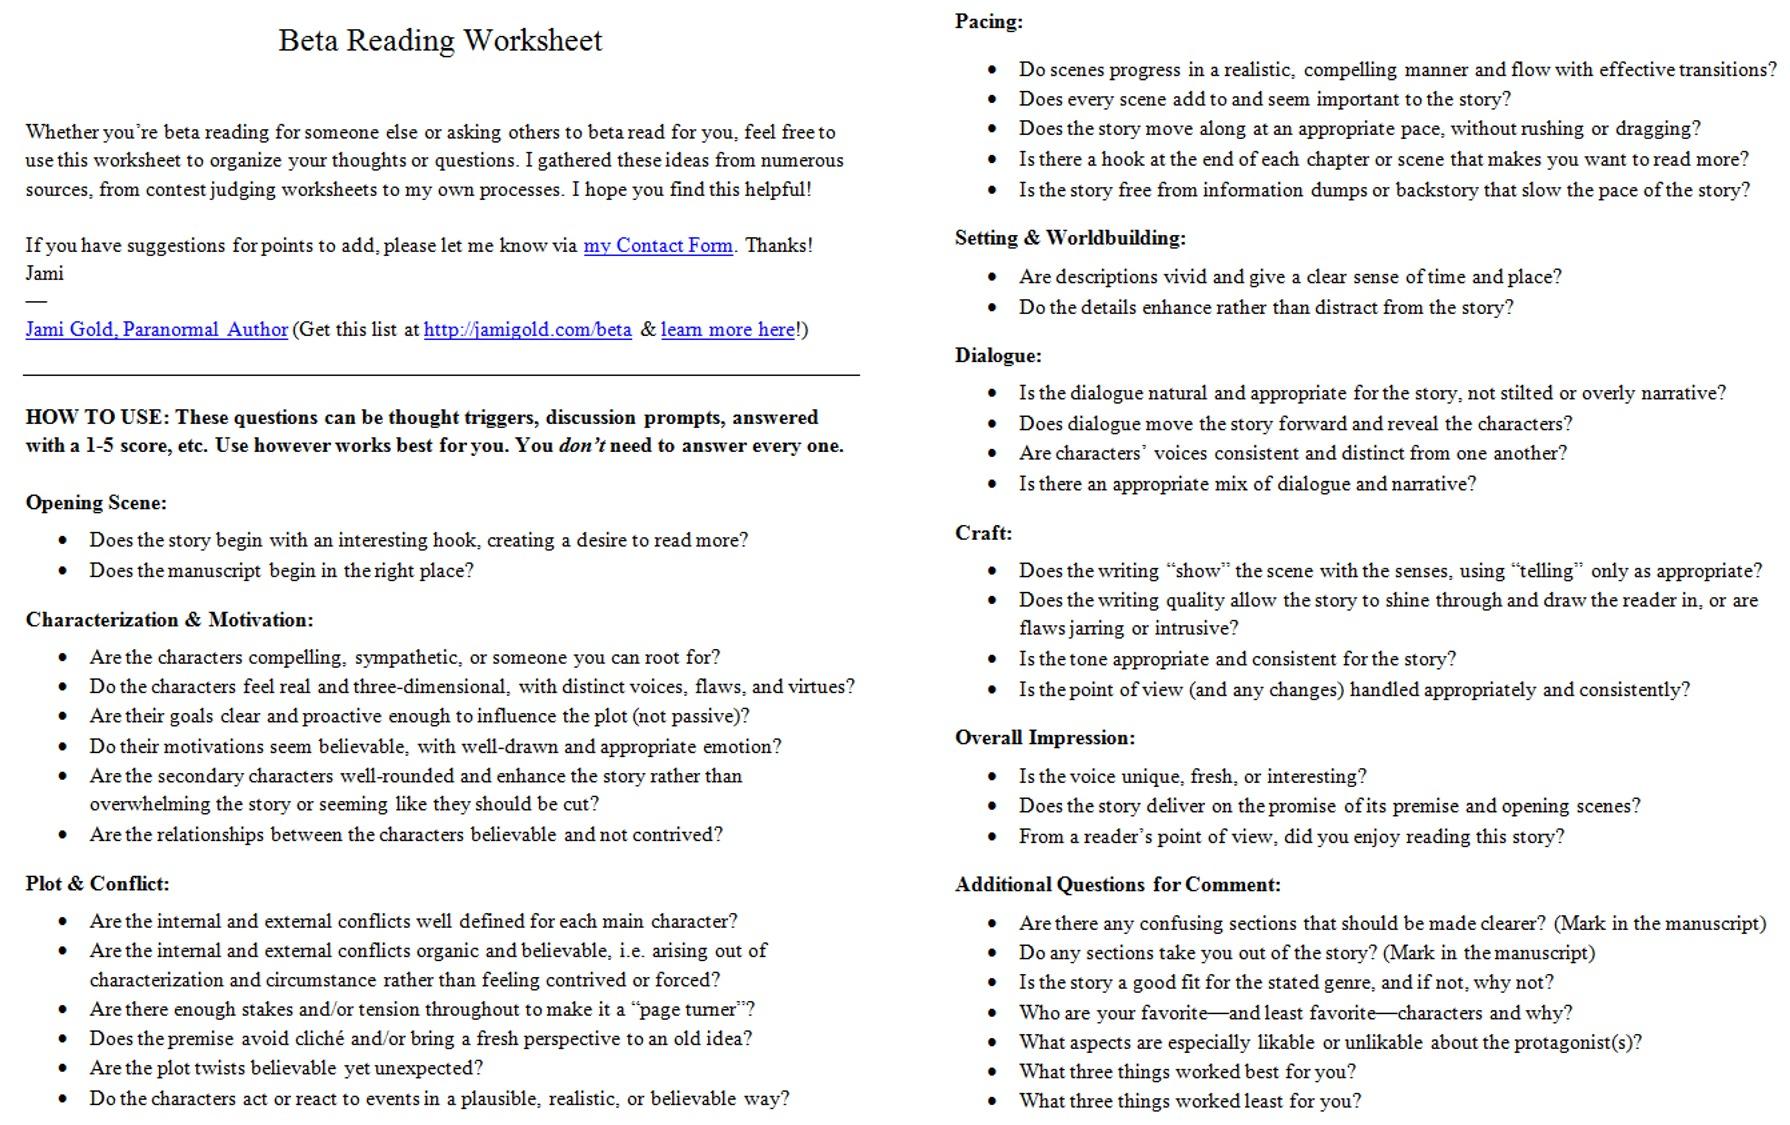 Proatmealus  Surprising Worksheets For Writers  Jami Gold Paranormal Author With Marvelous Screen Shot Of The Twopage Beta Reading Worksheet With Endearing Transportation Worksheet Also Prefix Suffix Root Word Worksheet In Addition Poetry Explication Worksheet And Combine Excel Worksheets Into One As Well As The Remainder Theorem Worksheet Additionally Free Articulation Worksheets From Jamigoldcom With Proatmealus  Marvelous Worksheets For Writers  Jami Gold Paranormal Author With Endearing Screen Shot Of The Twopage Beta Reading Worksheet And Surprising Transportation Worksheet Also Prefix Suffix Root Word Worksheet In Addition Poetry Explication Worksheet From Jamigoldcom